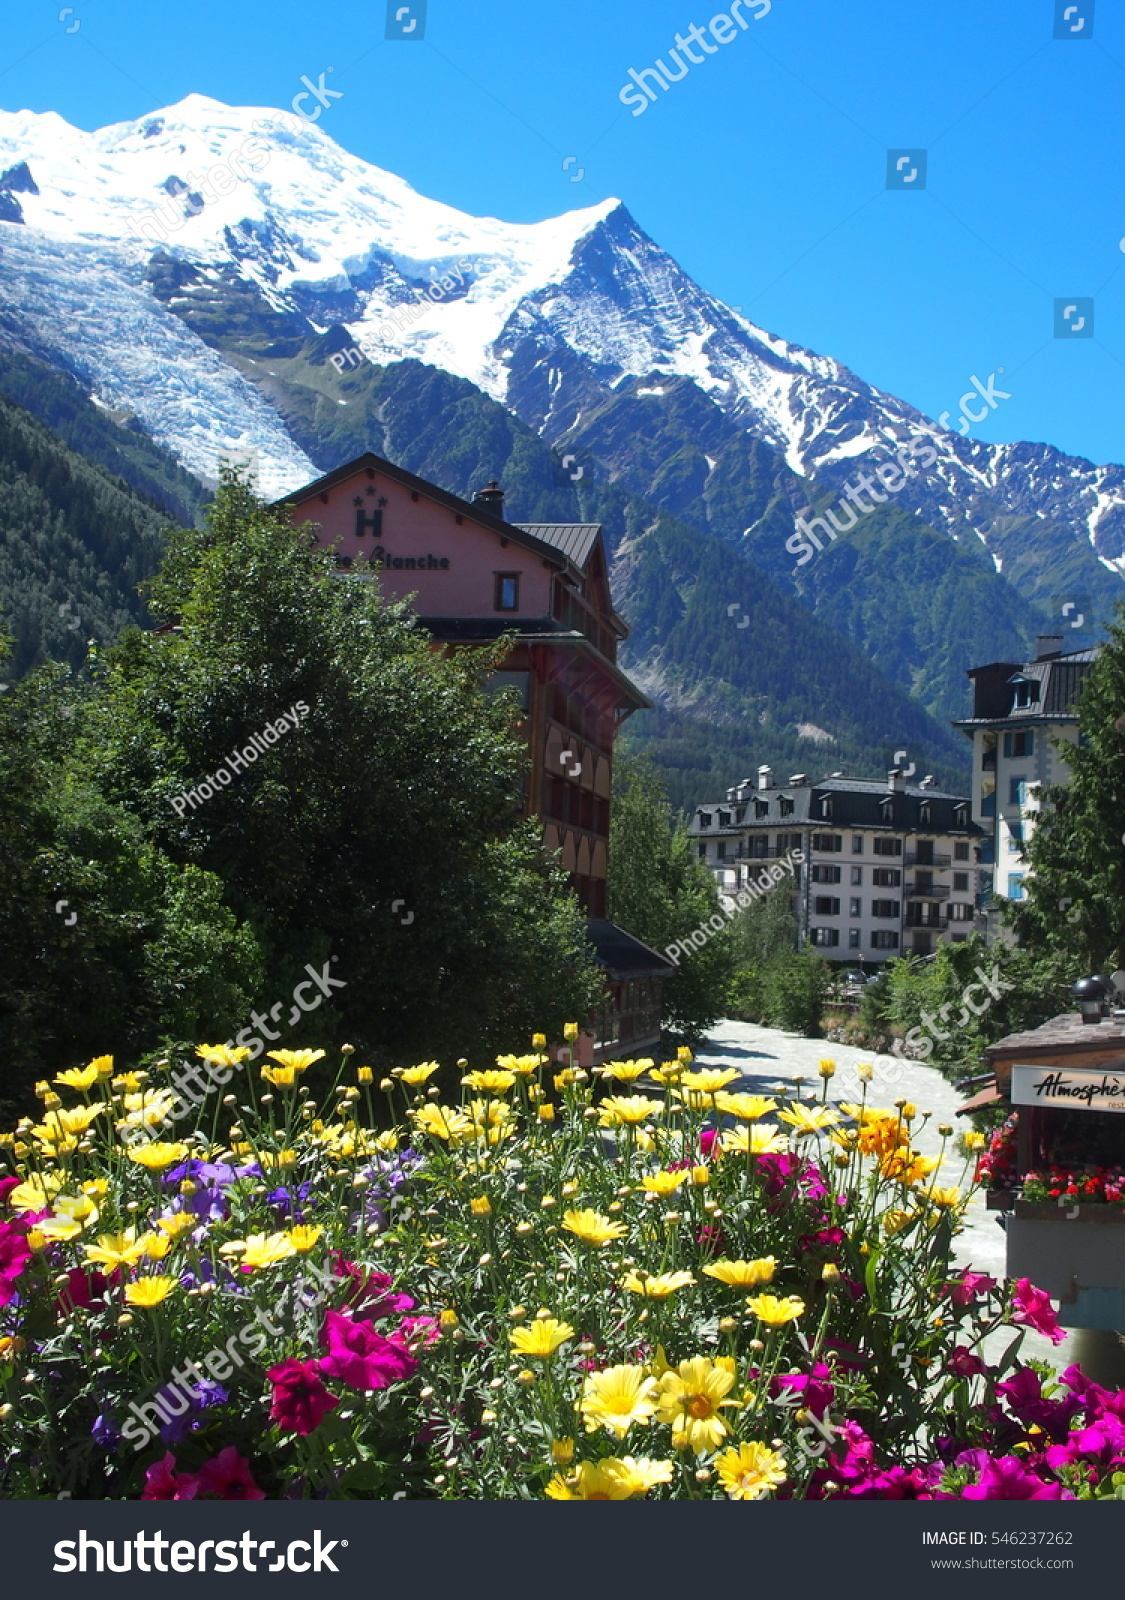 Chamonix mont blanc france europe on stock photo 546237262 chamonix mont blanc france europe on july 2016 colorful flowers in resort village izmirmasajfo Choice Image